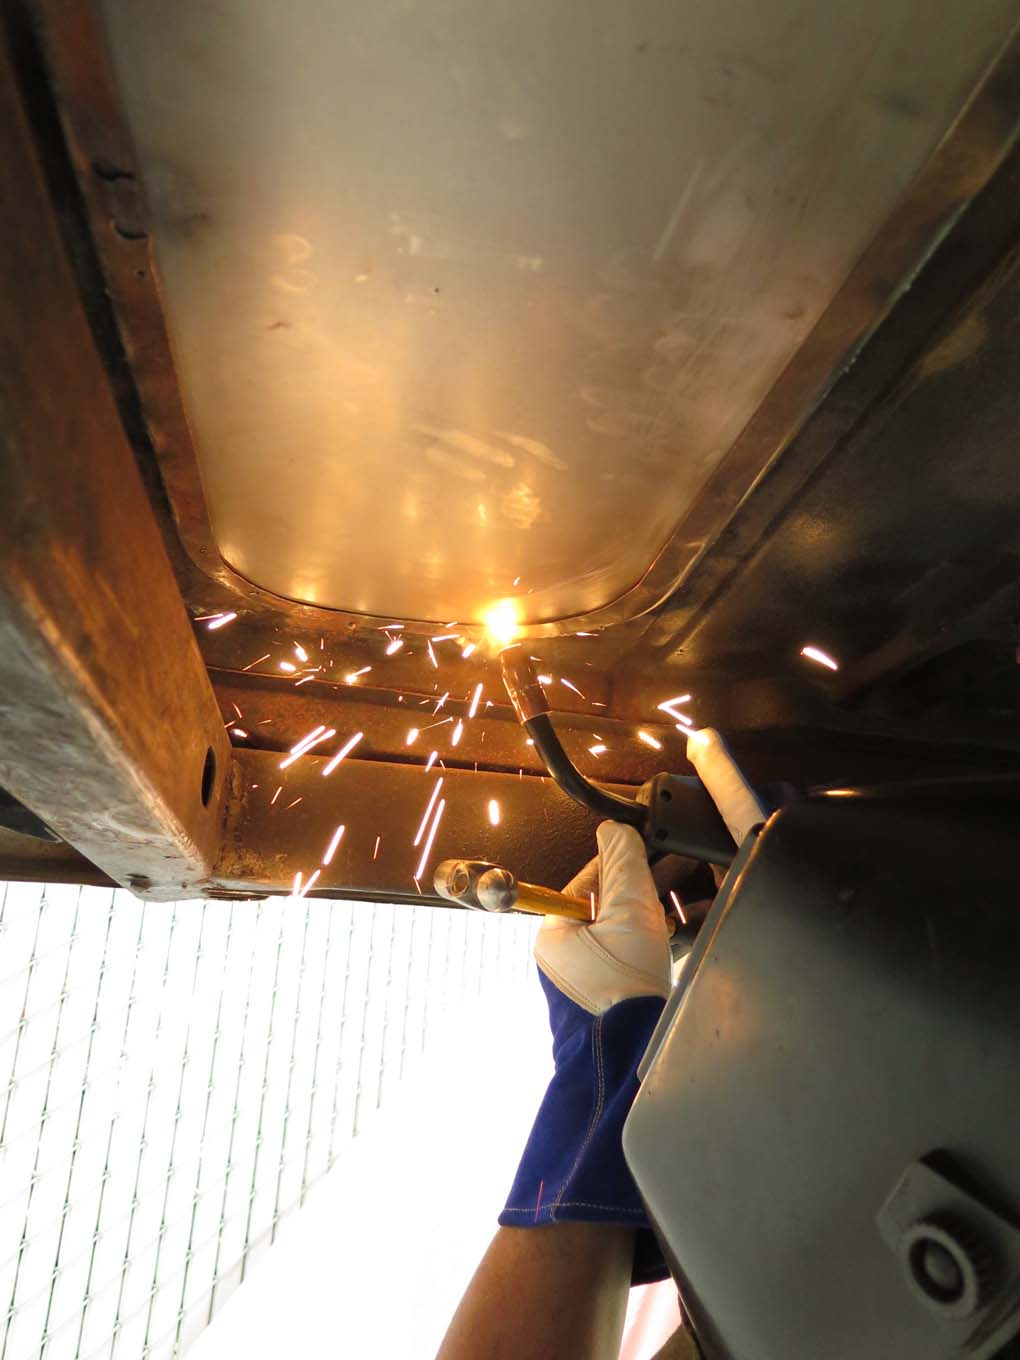 The edge was also welded on the underside in sections.